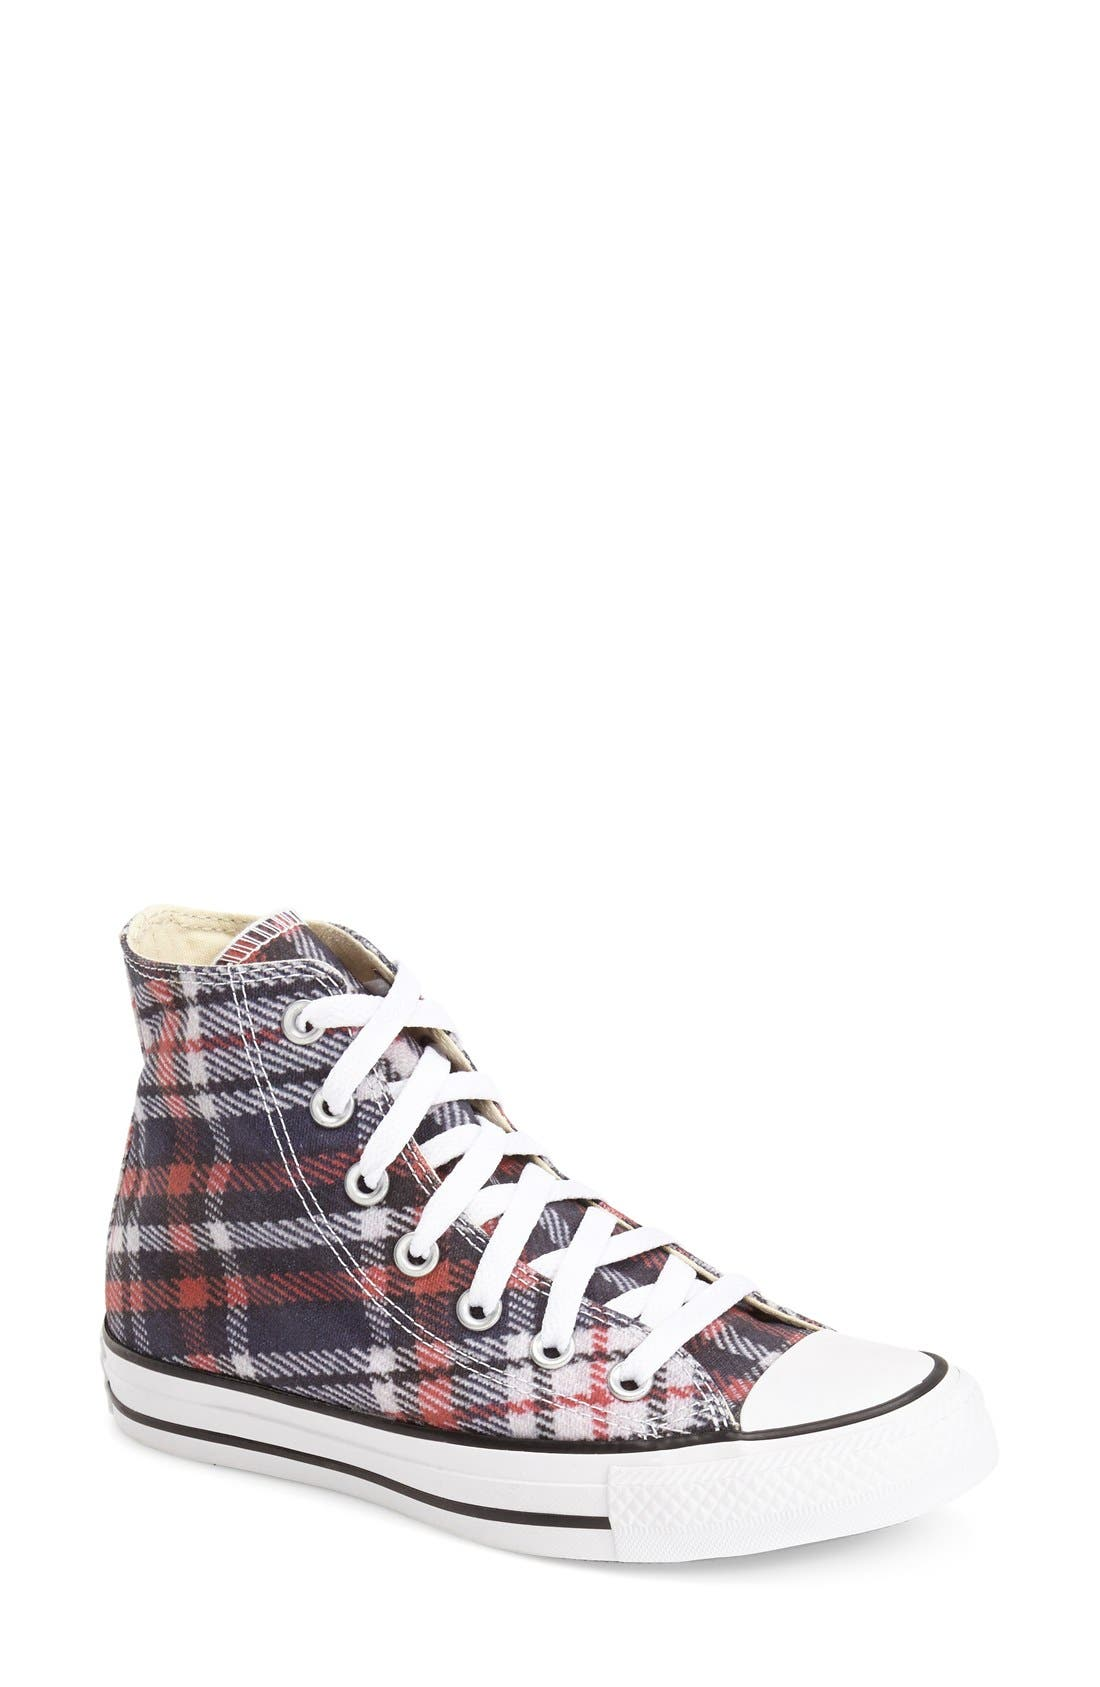 Main Image - Converse Chuck Taylor® All Star® Plaid High Top Sneaker (Women)